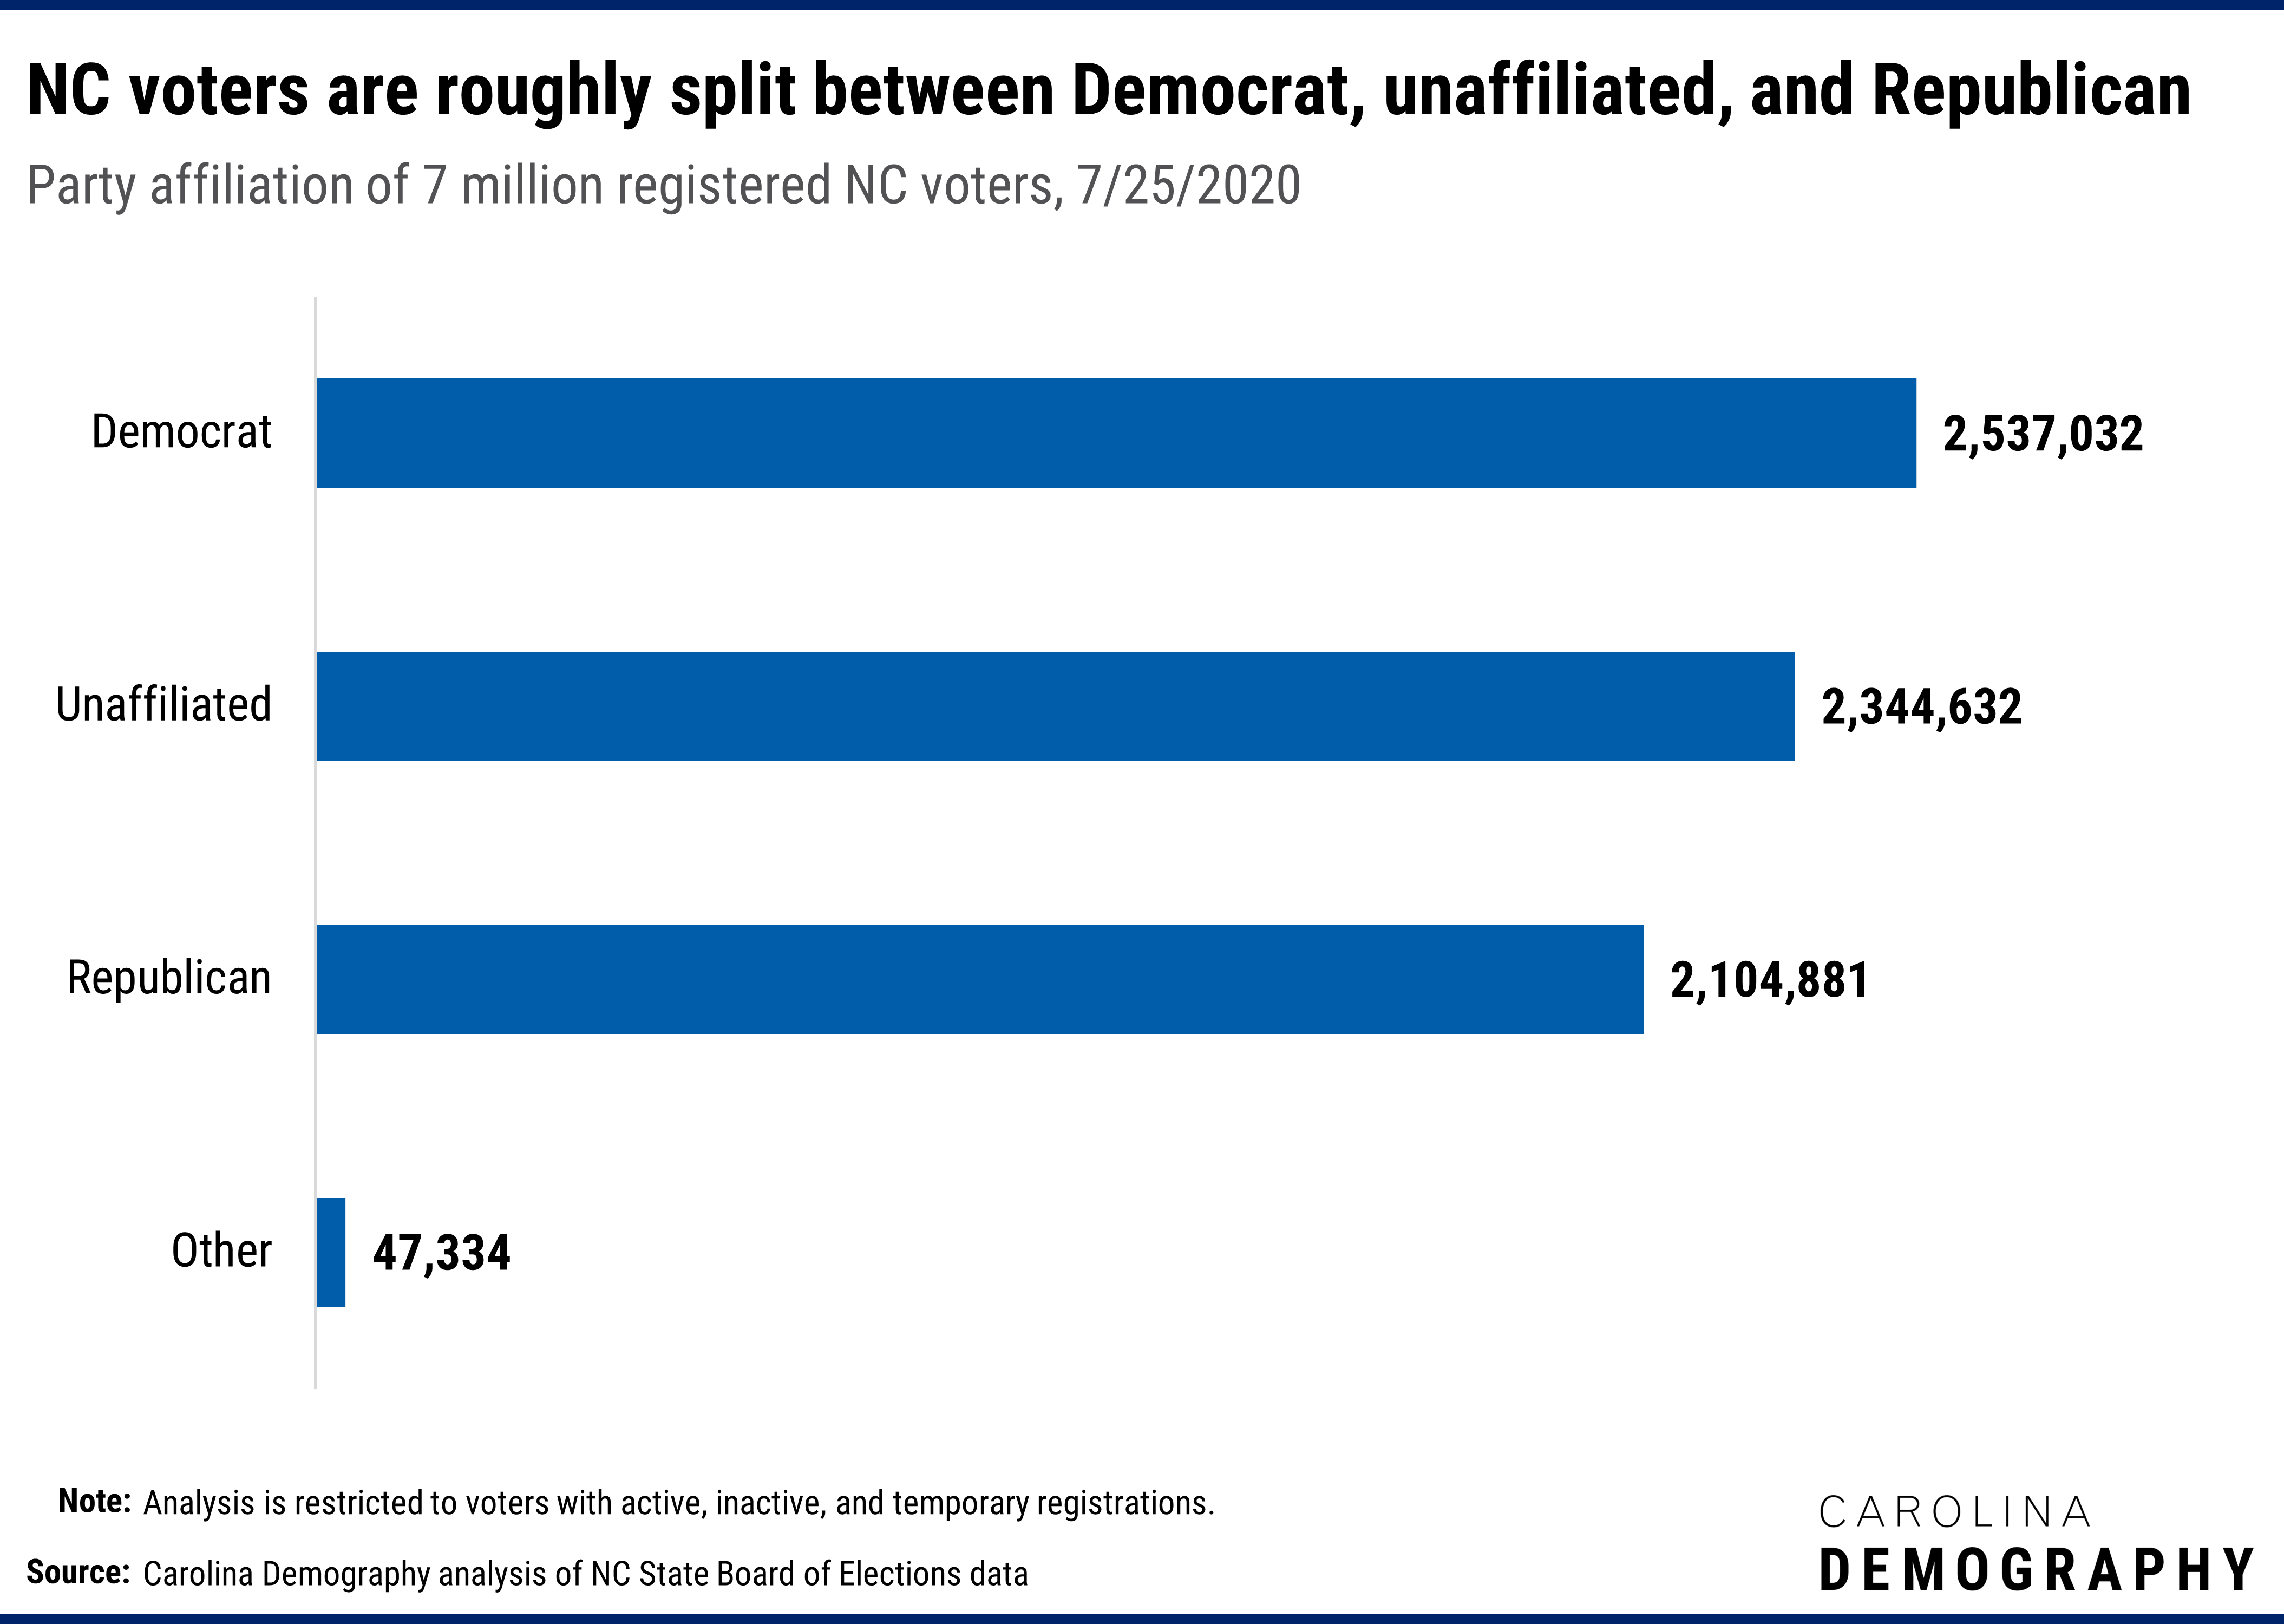 NC voters are roughly split between Democrat, unaffiliated, and Republican Party affiliation of 7 million registered NC voters, 7/25/2020. 2,537,032 or 36% were registered Democrat; 2,344,632 or 33% were registered unaffiliated; 2,104,881 or 30% were registered Republican; and 47,334 or 0.7% were registered to another party.